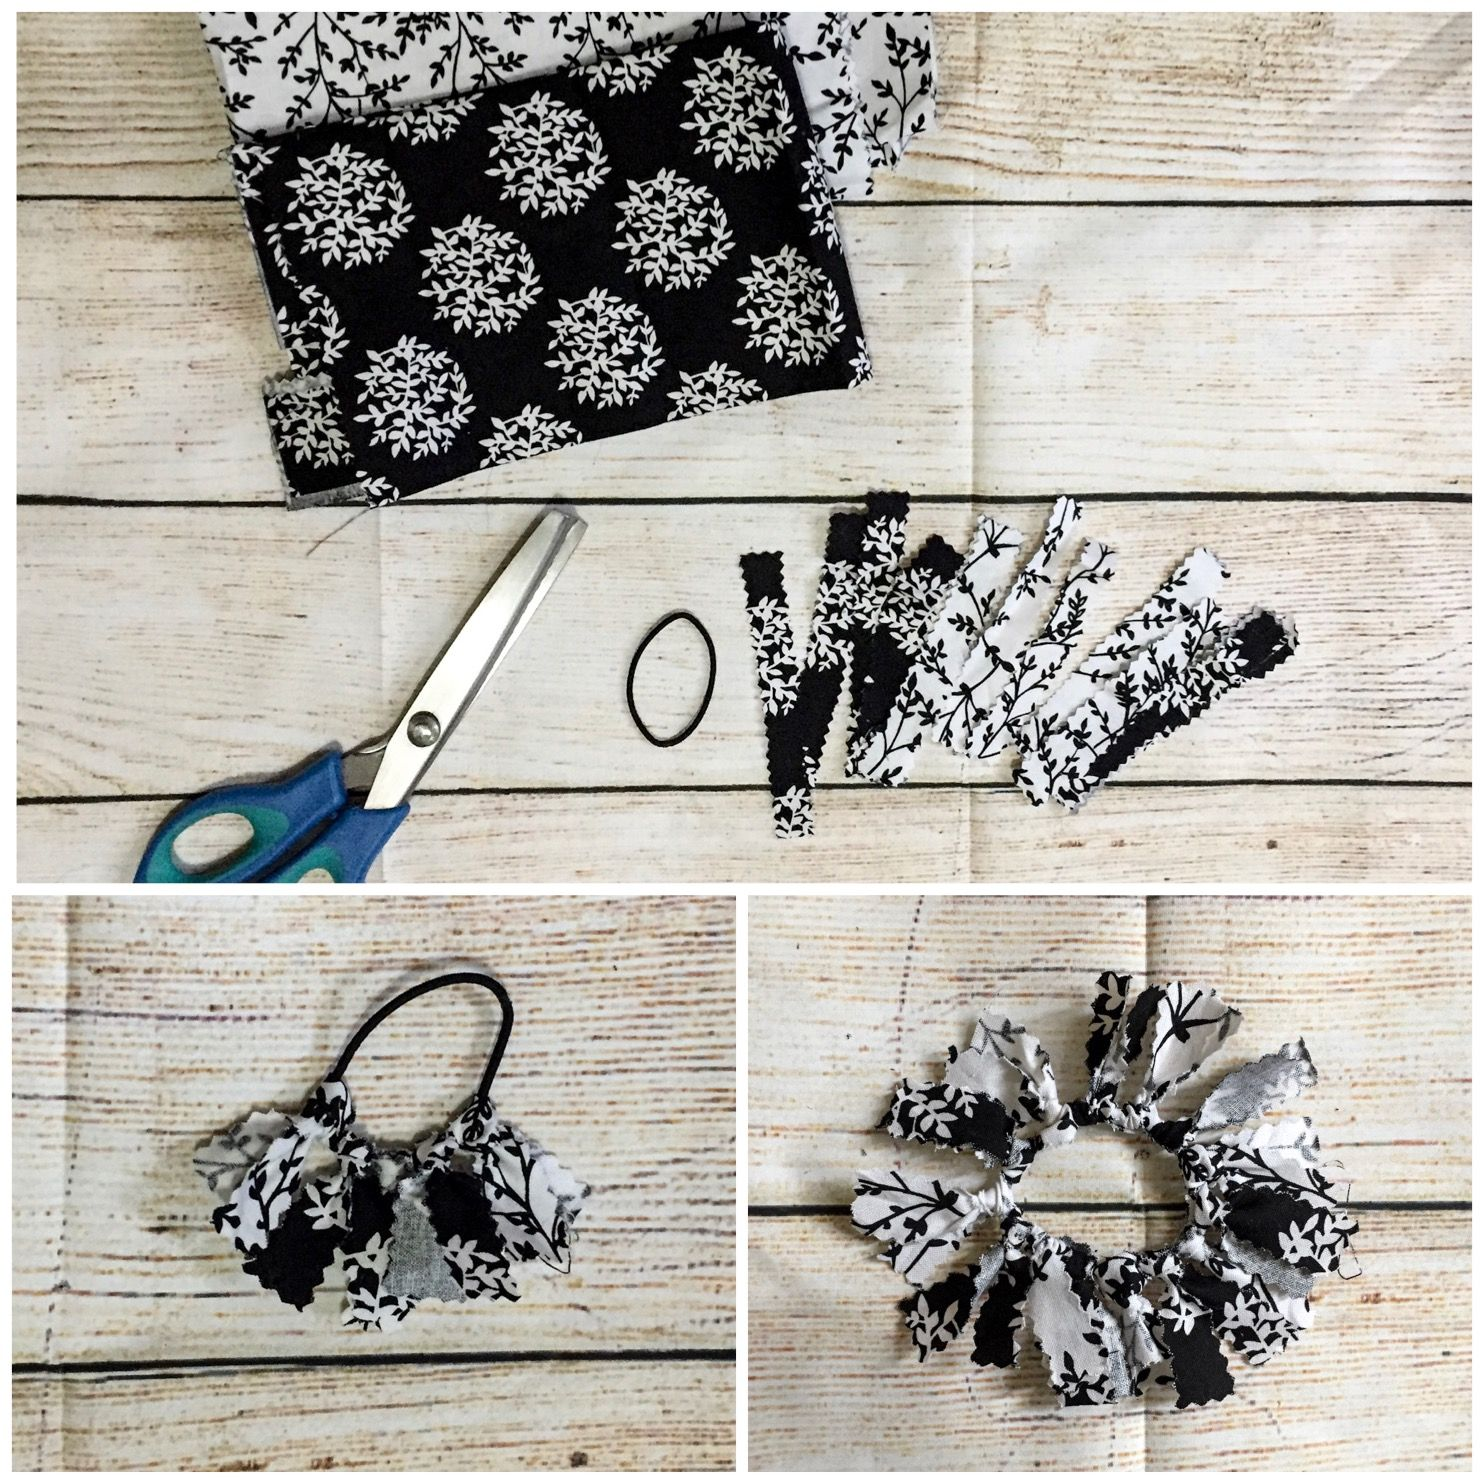 Diy hair accessories that are quick and easy and no sewing required